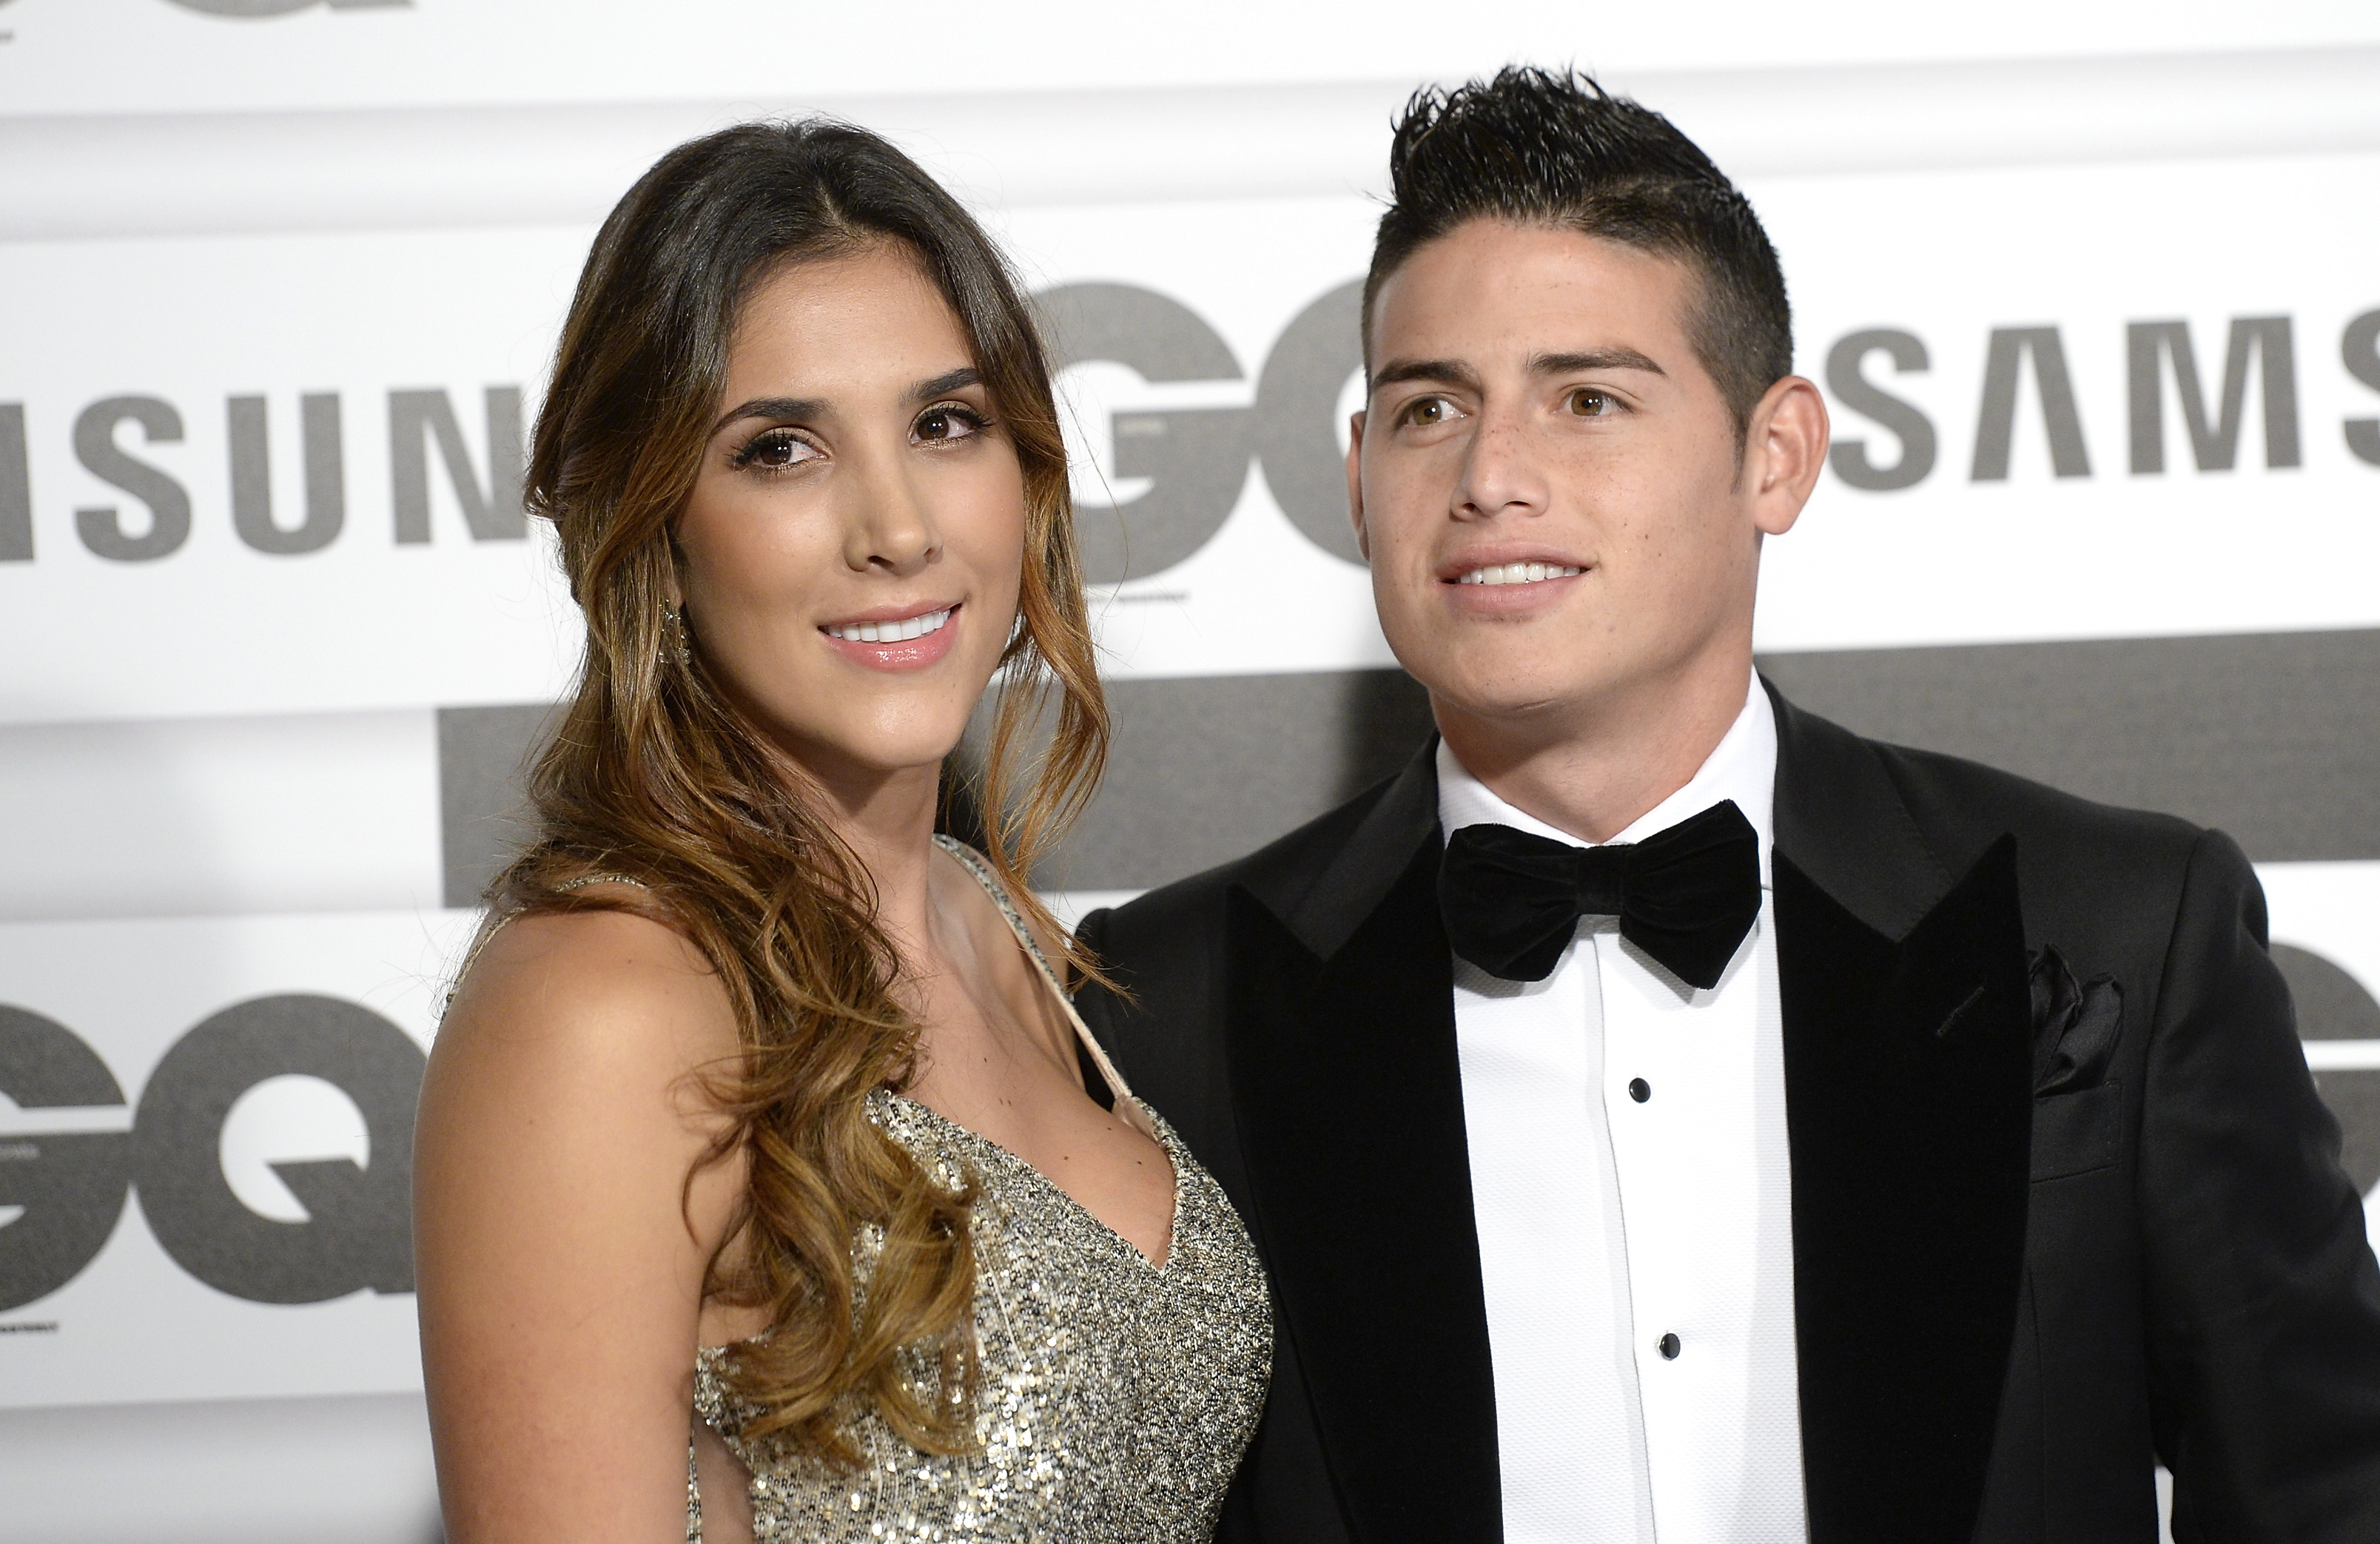 Daniela Ospina and James Rodríguez